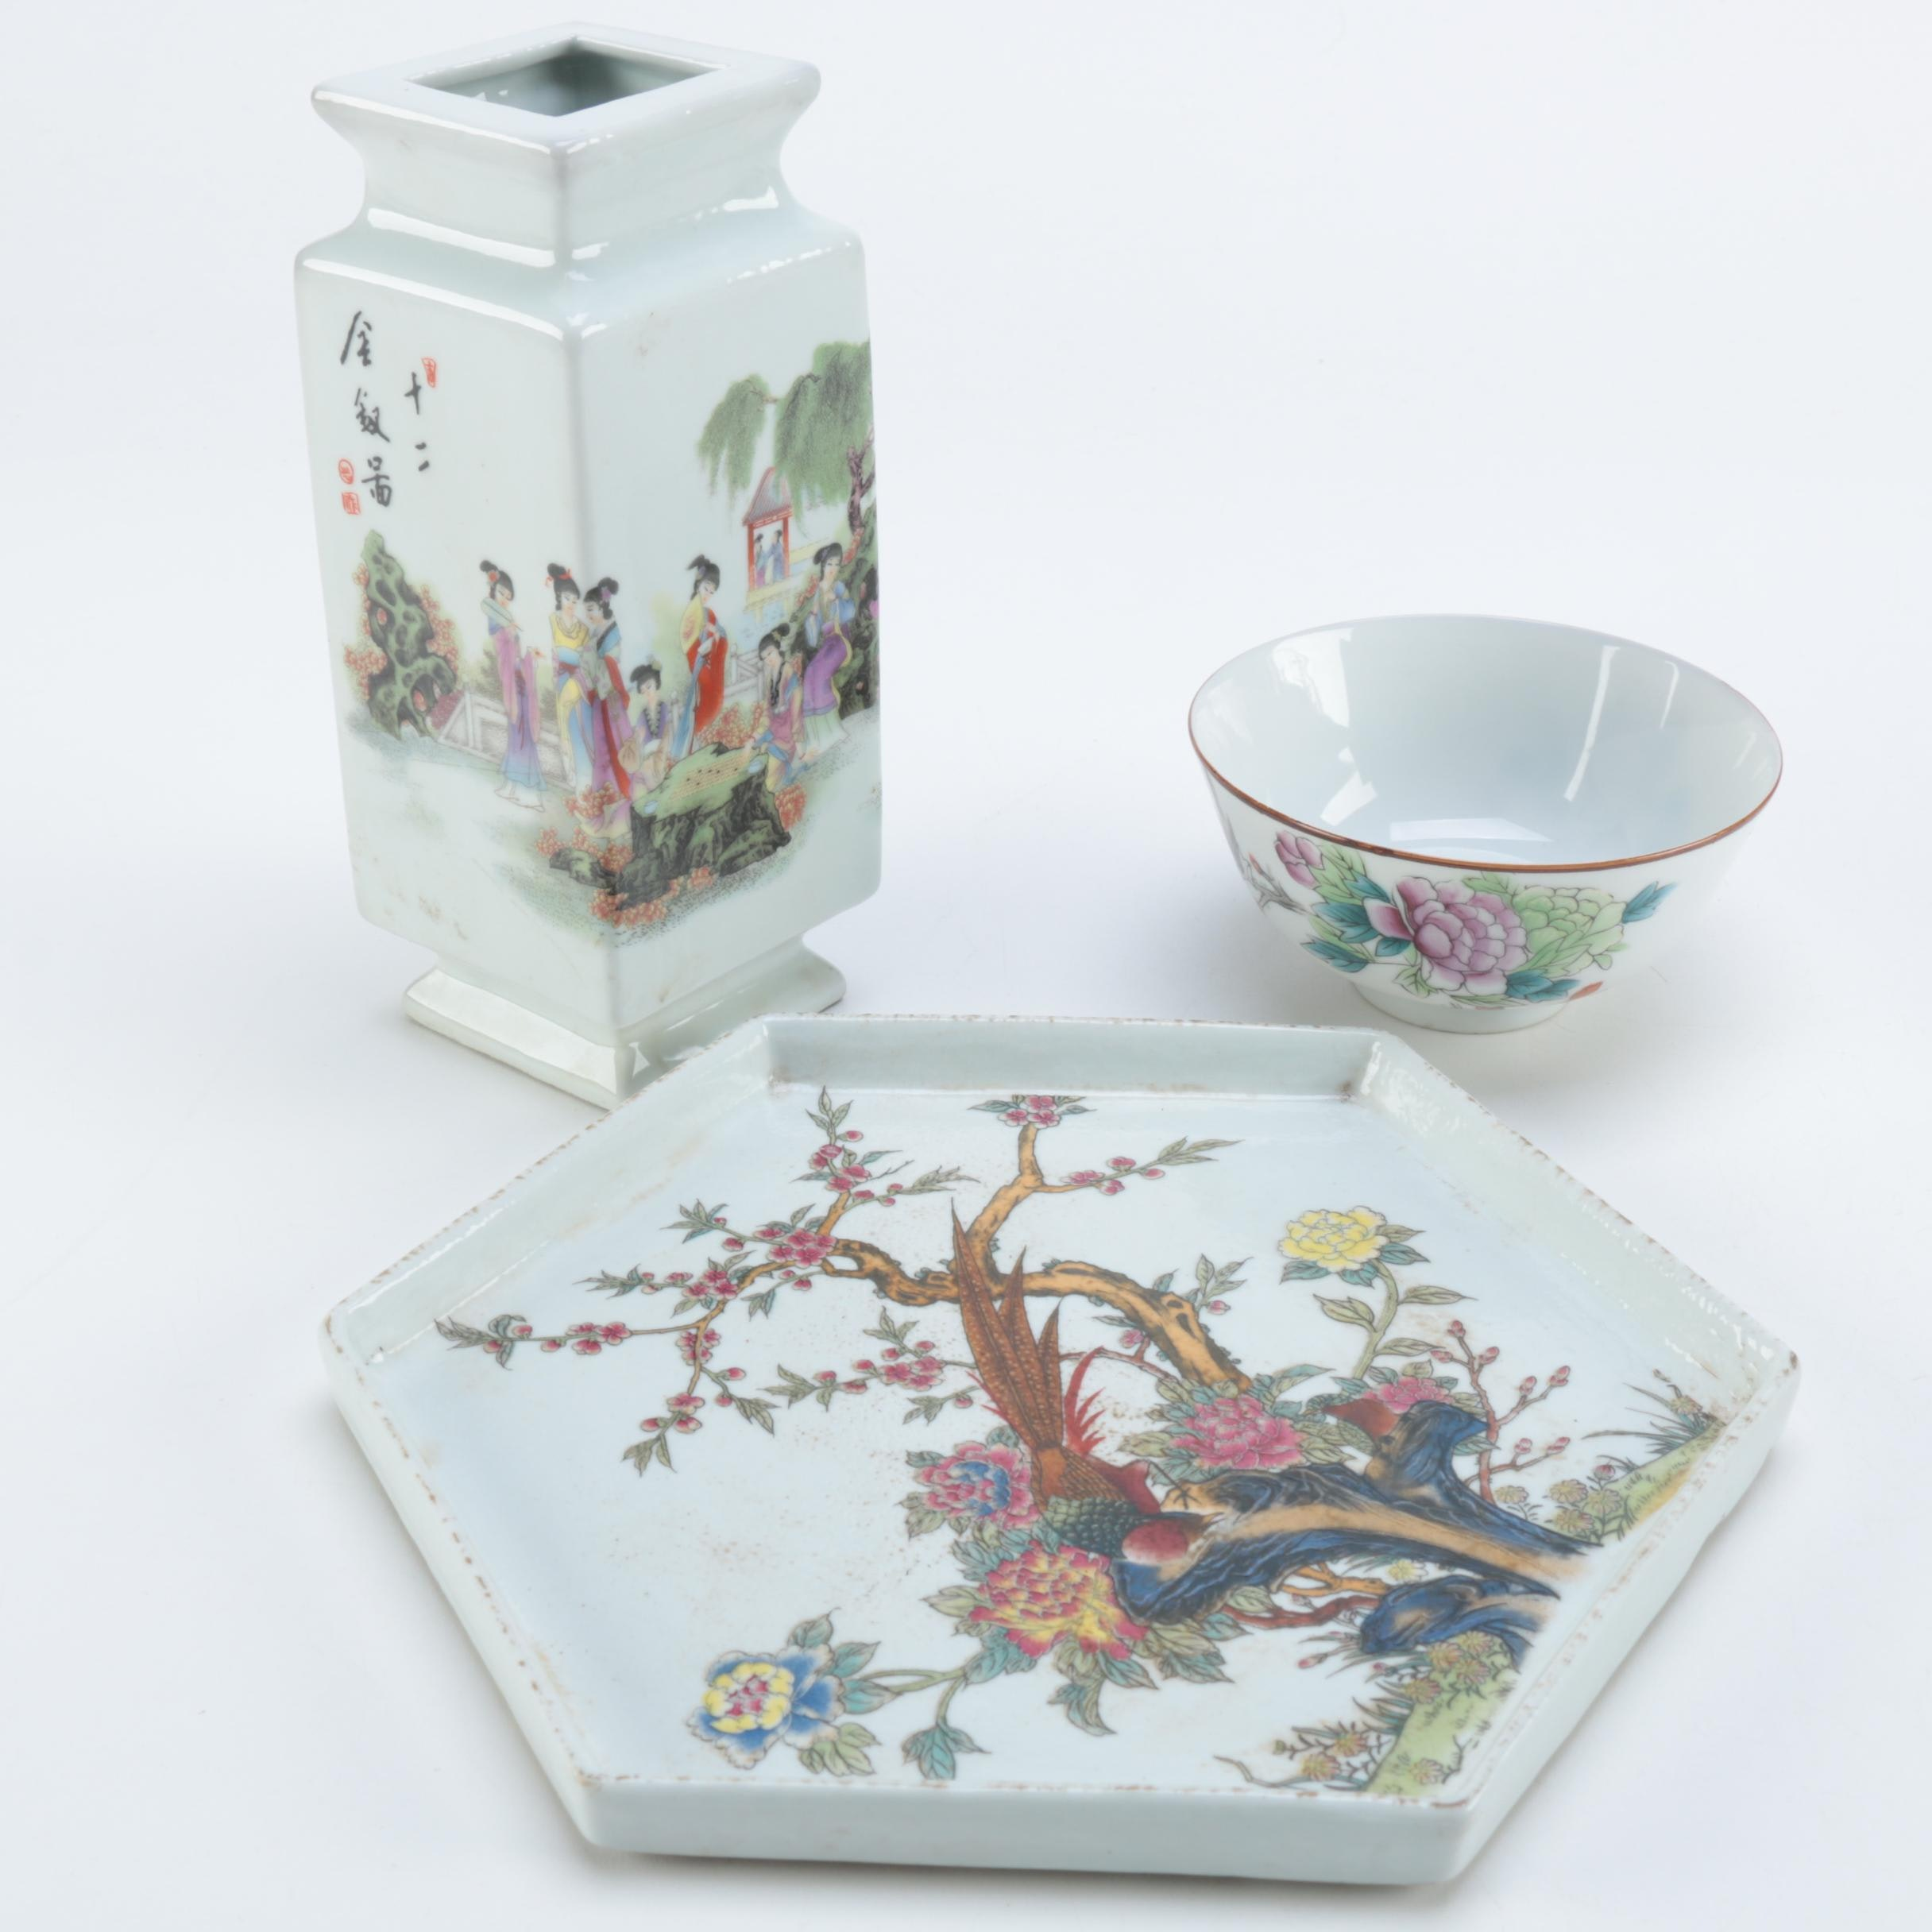 Chinese Ceramic Plate, Bowl and Vase